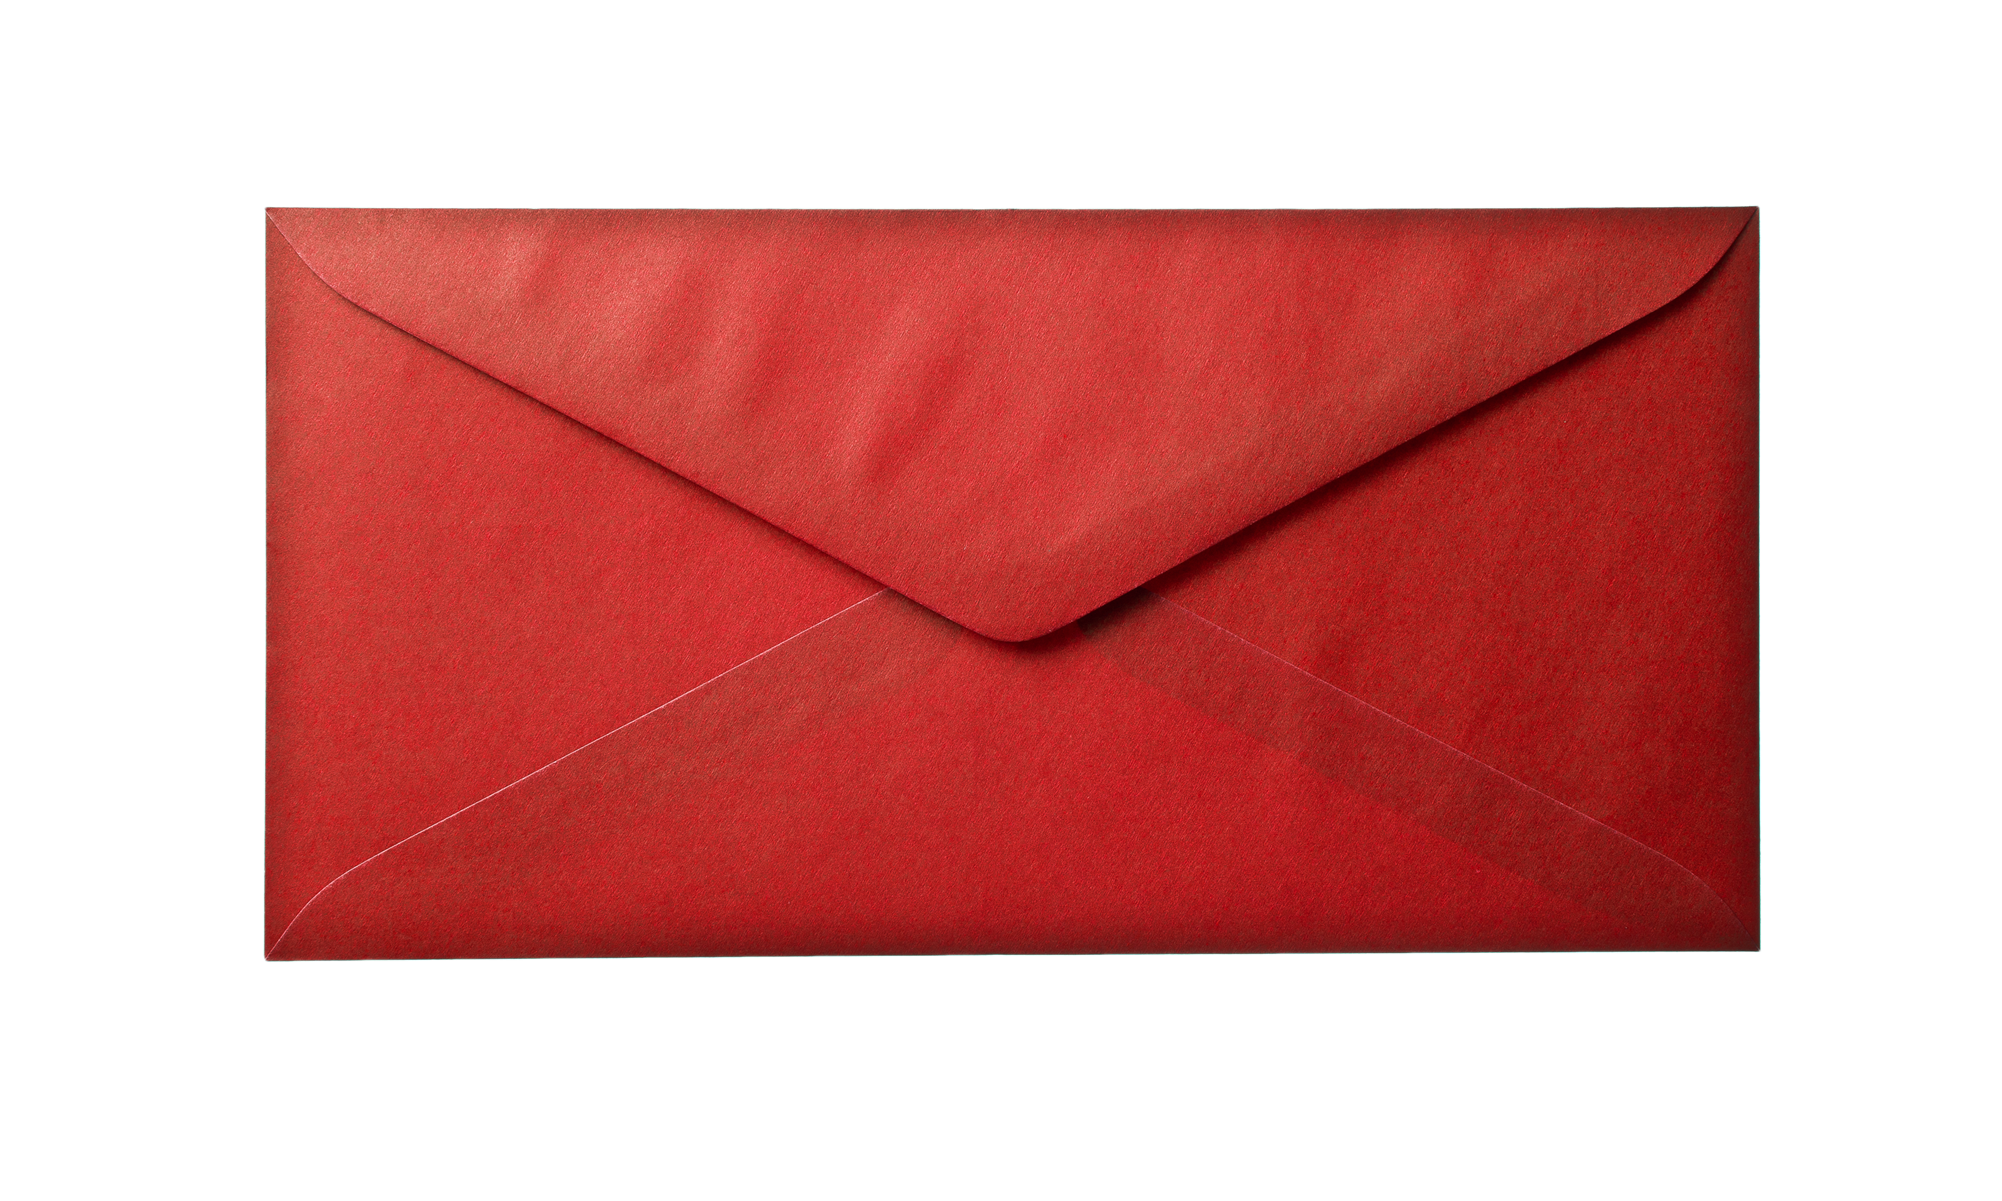 How To Make A Paper Mail Envelope